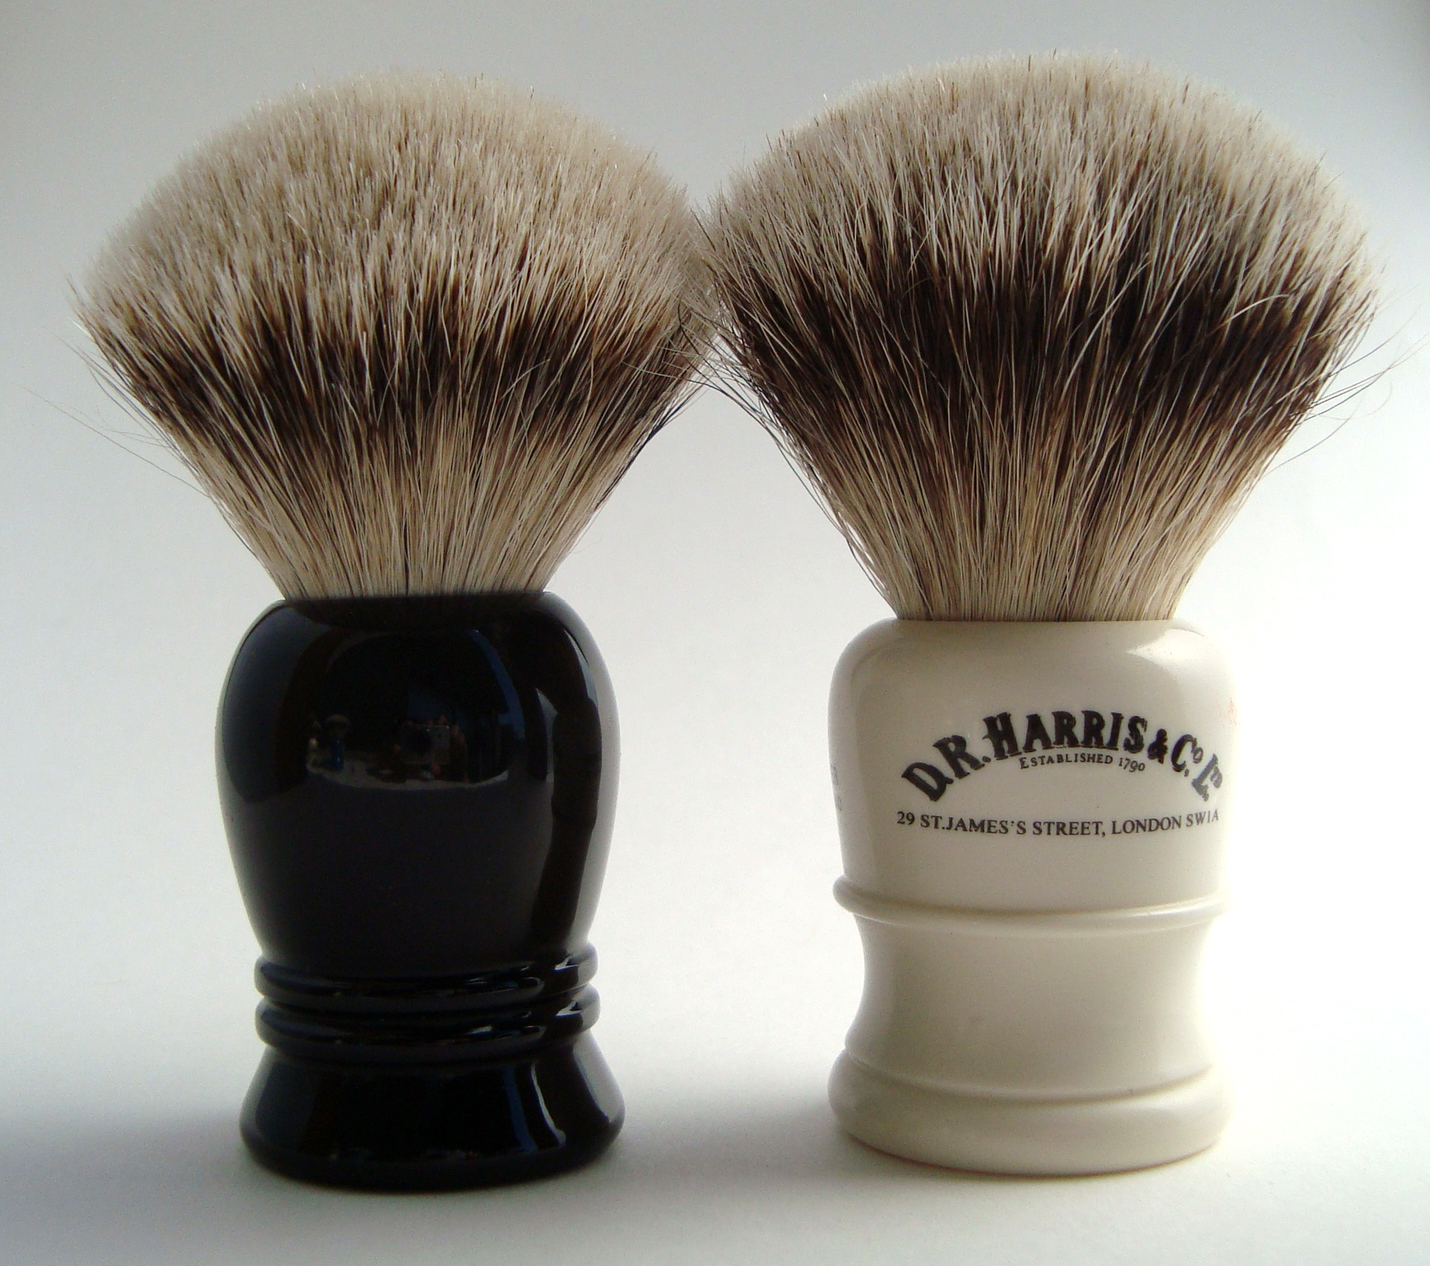 Straight Razor Shaving Blog by A Sharper Razor | ASR - Part 5